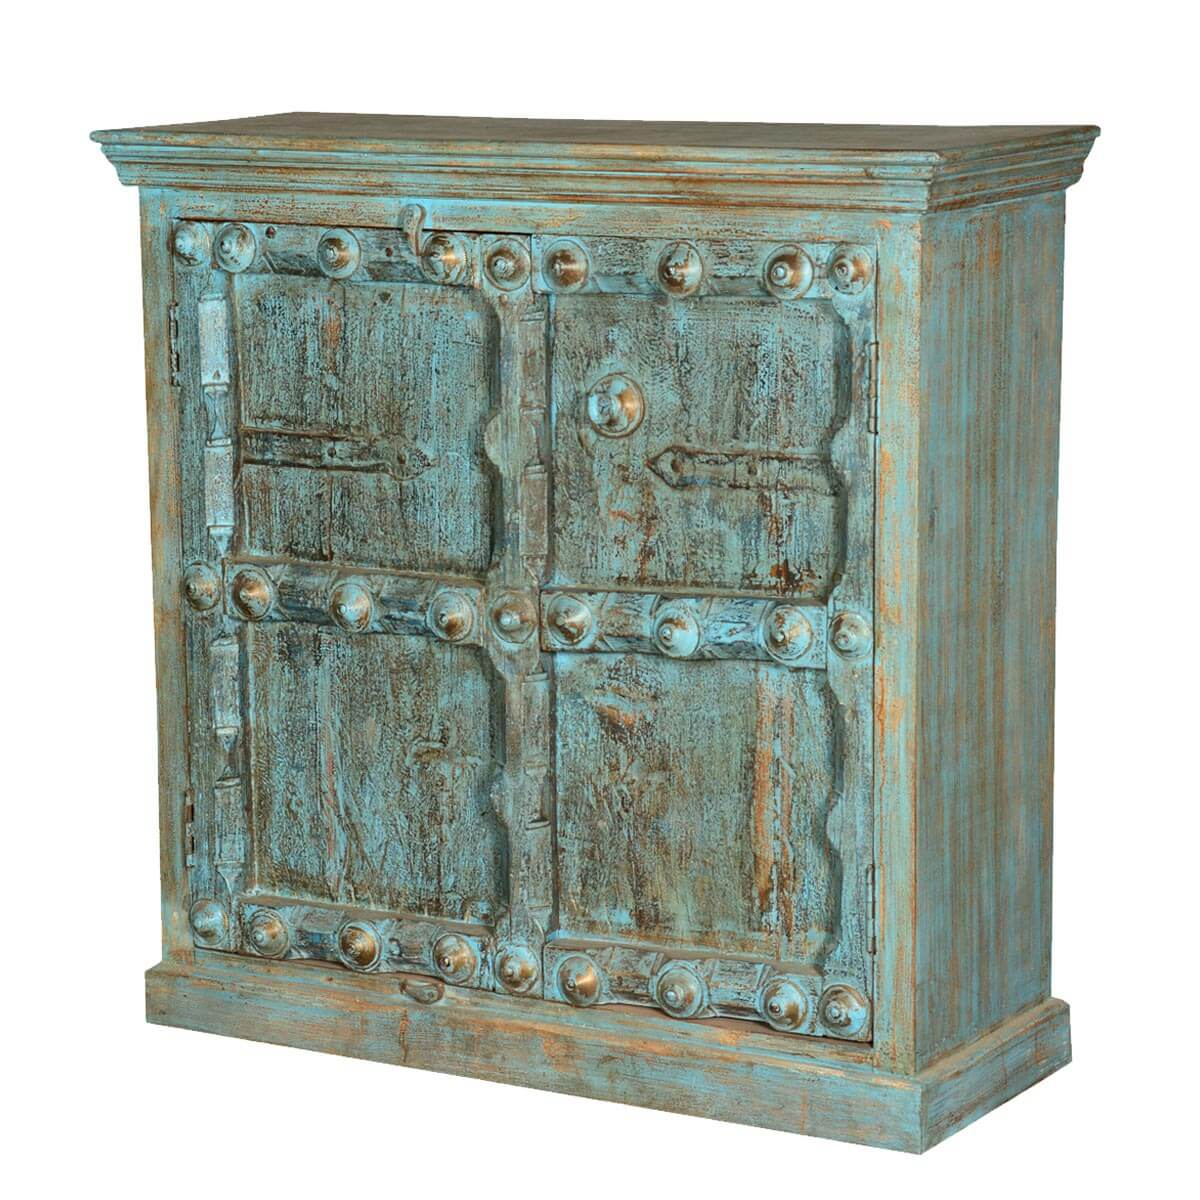 For Sale On 1stdibs   Unusual, Decorative Cabinet Inspired By 15th Century  Examples.November, 2017   40 Best Gothic Cabinet Craft Coupons And Promo  Codes.